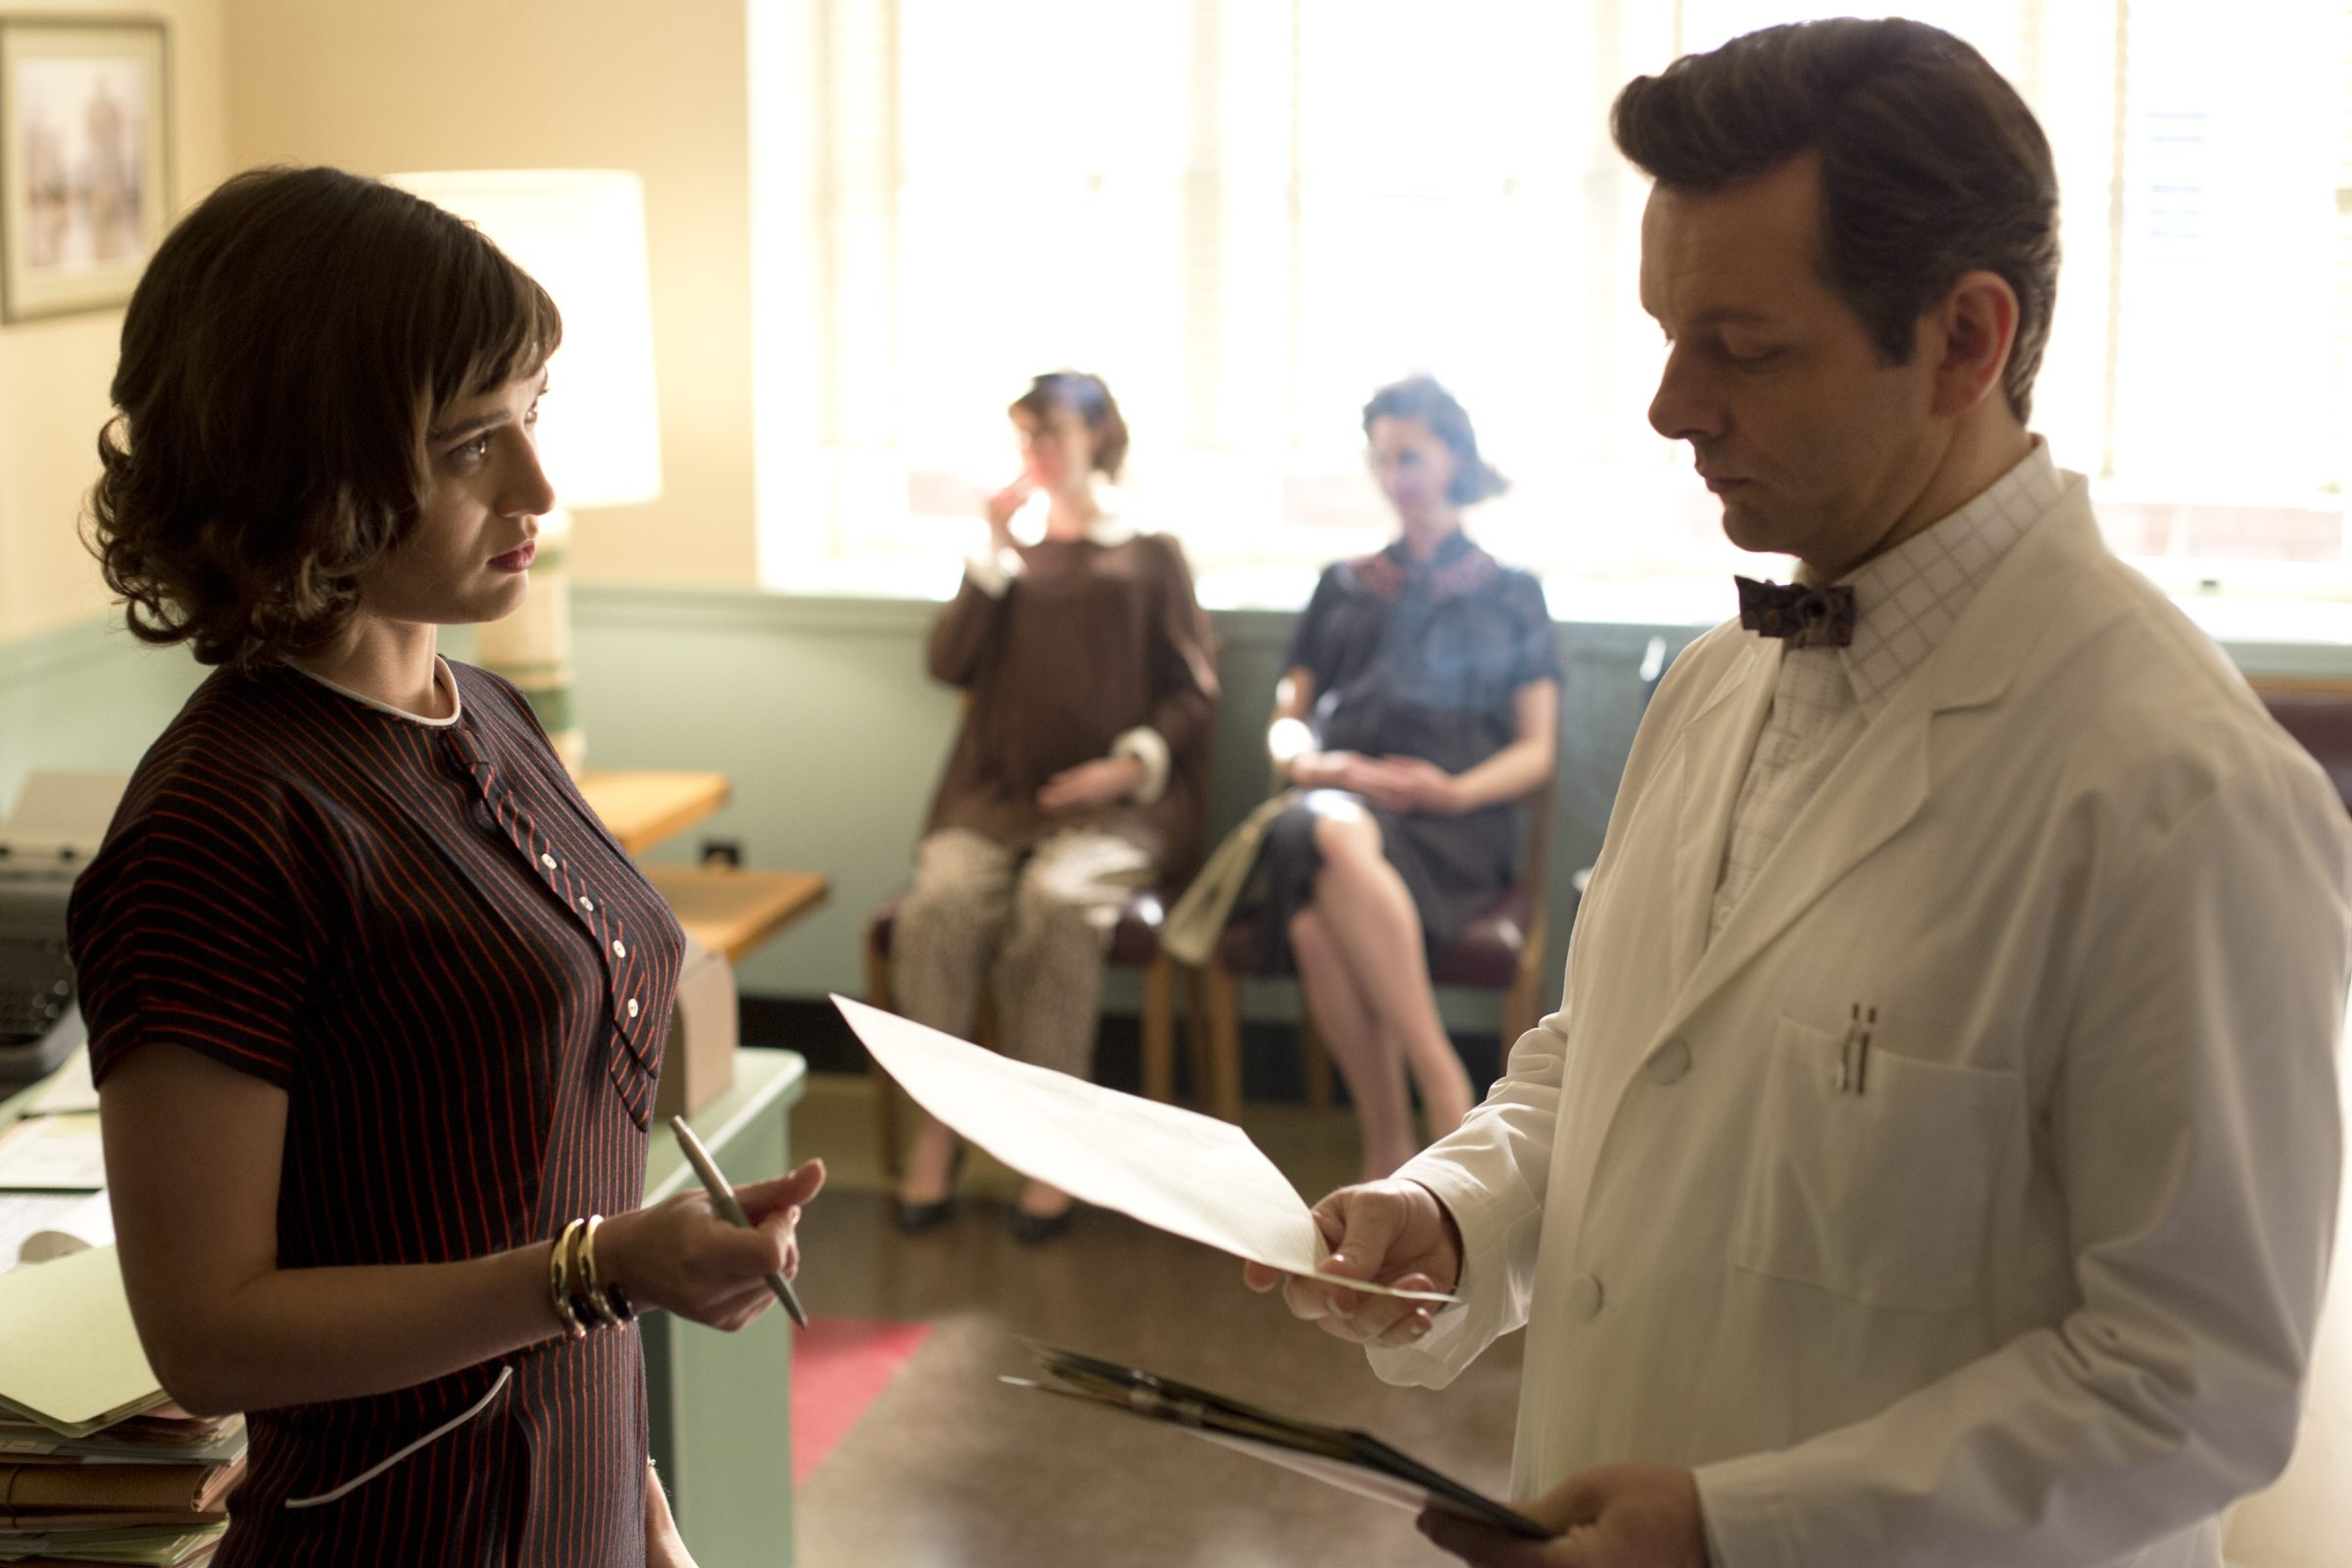 Michael Sheen as Dr. William Masters and Lizzy Caplan as Virginia Johnson in 'Masters of Sex' airing on Showtime.